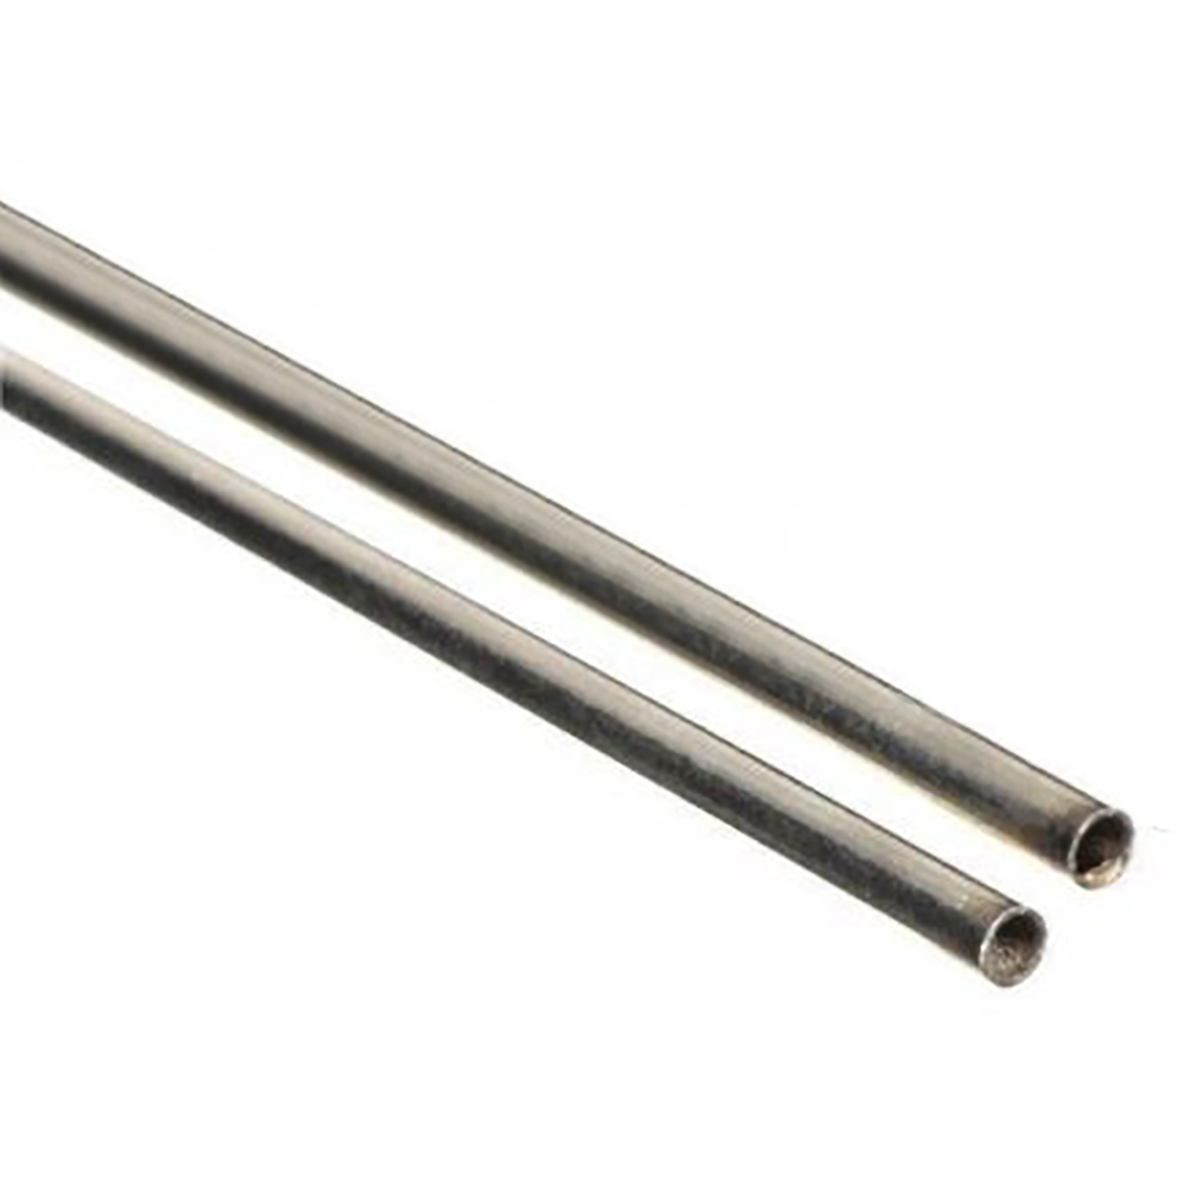 2pcs Silver 304 Stainless Steel Tube 2mm X 1.6mm X 500mm Capillary Tubes